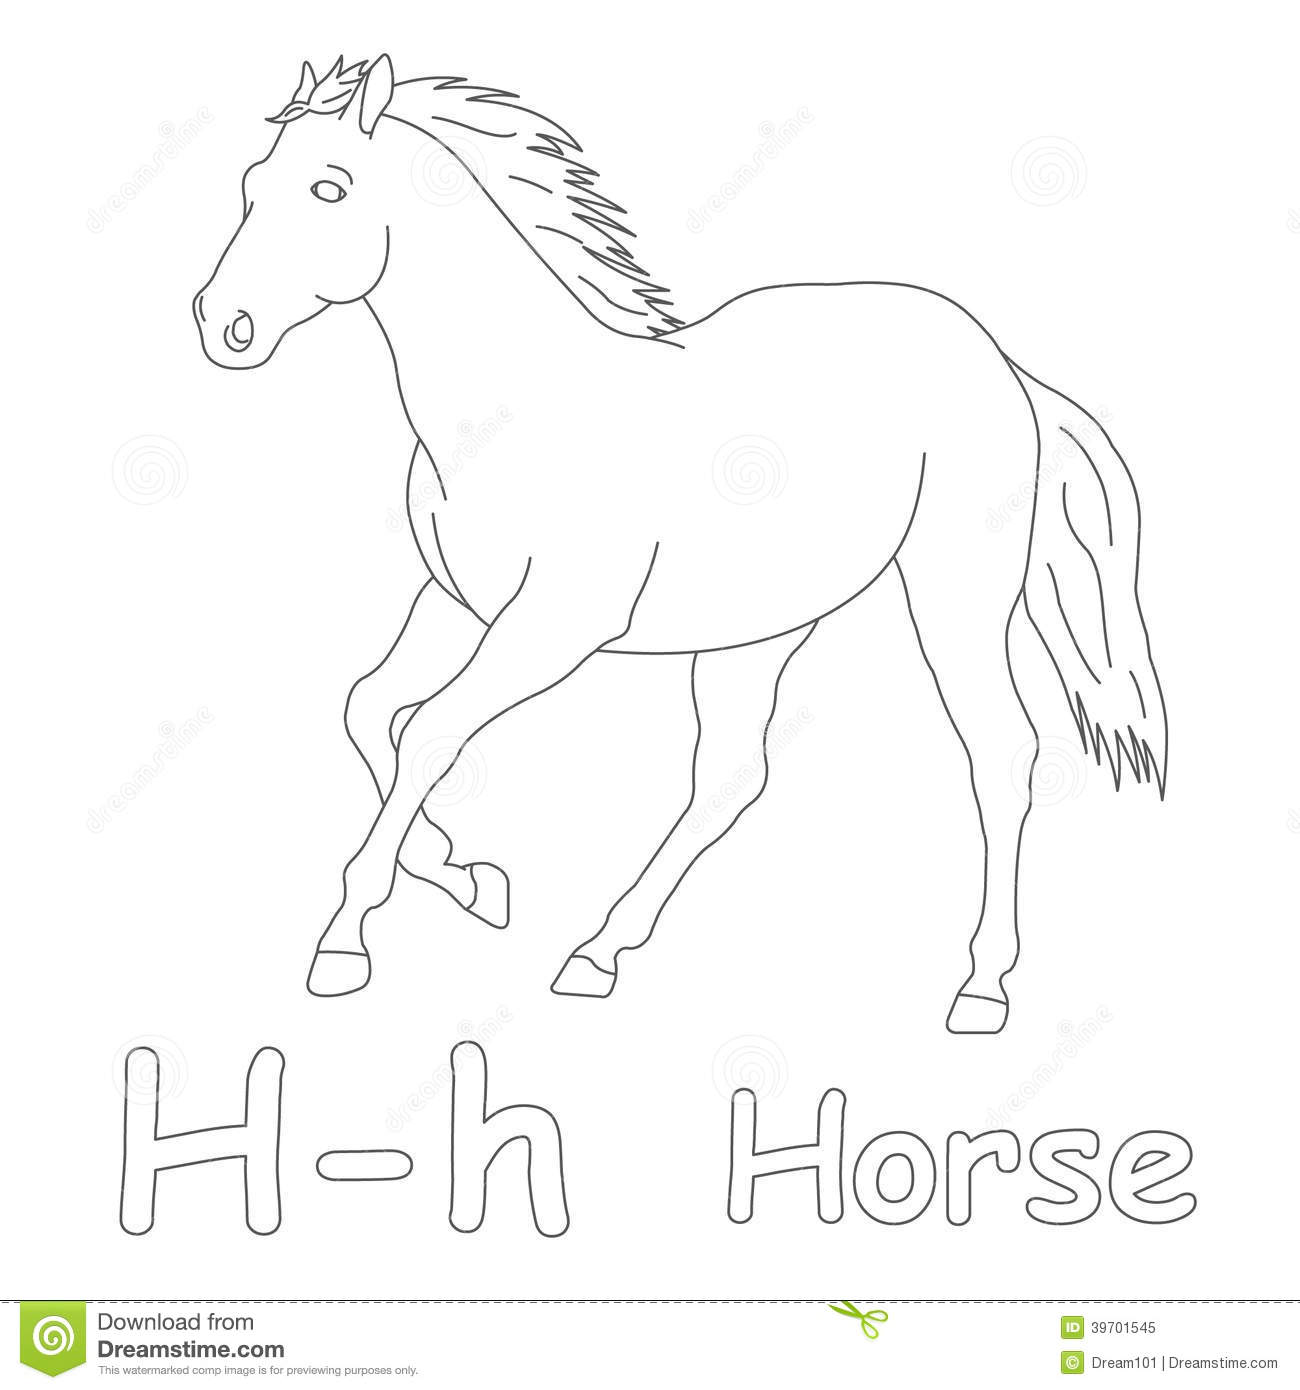 H for horse coloring page